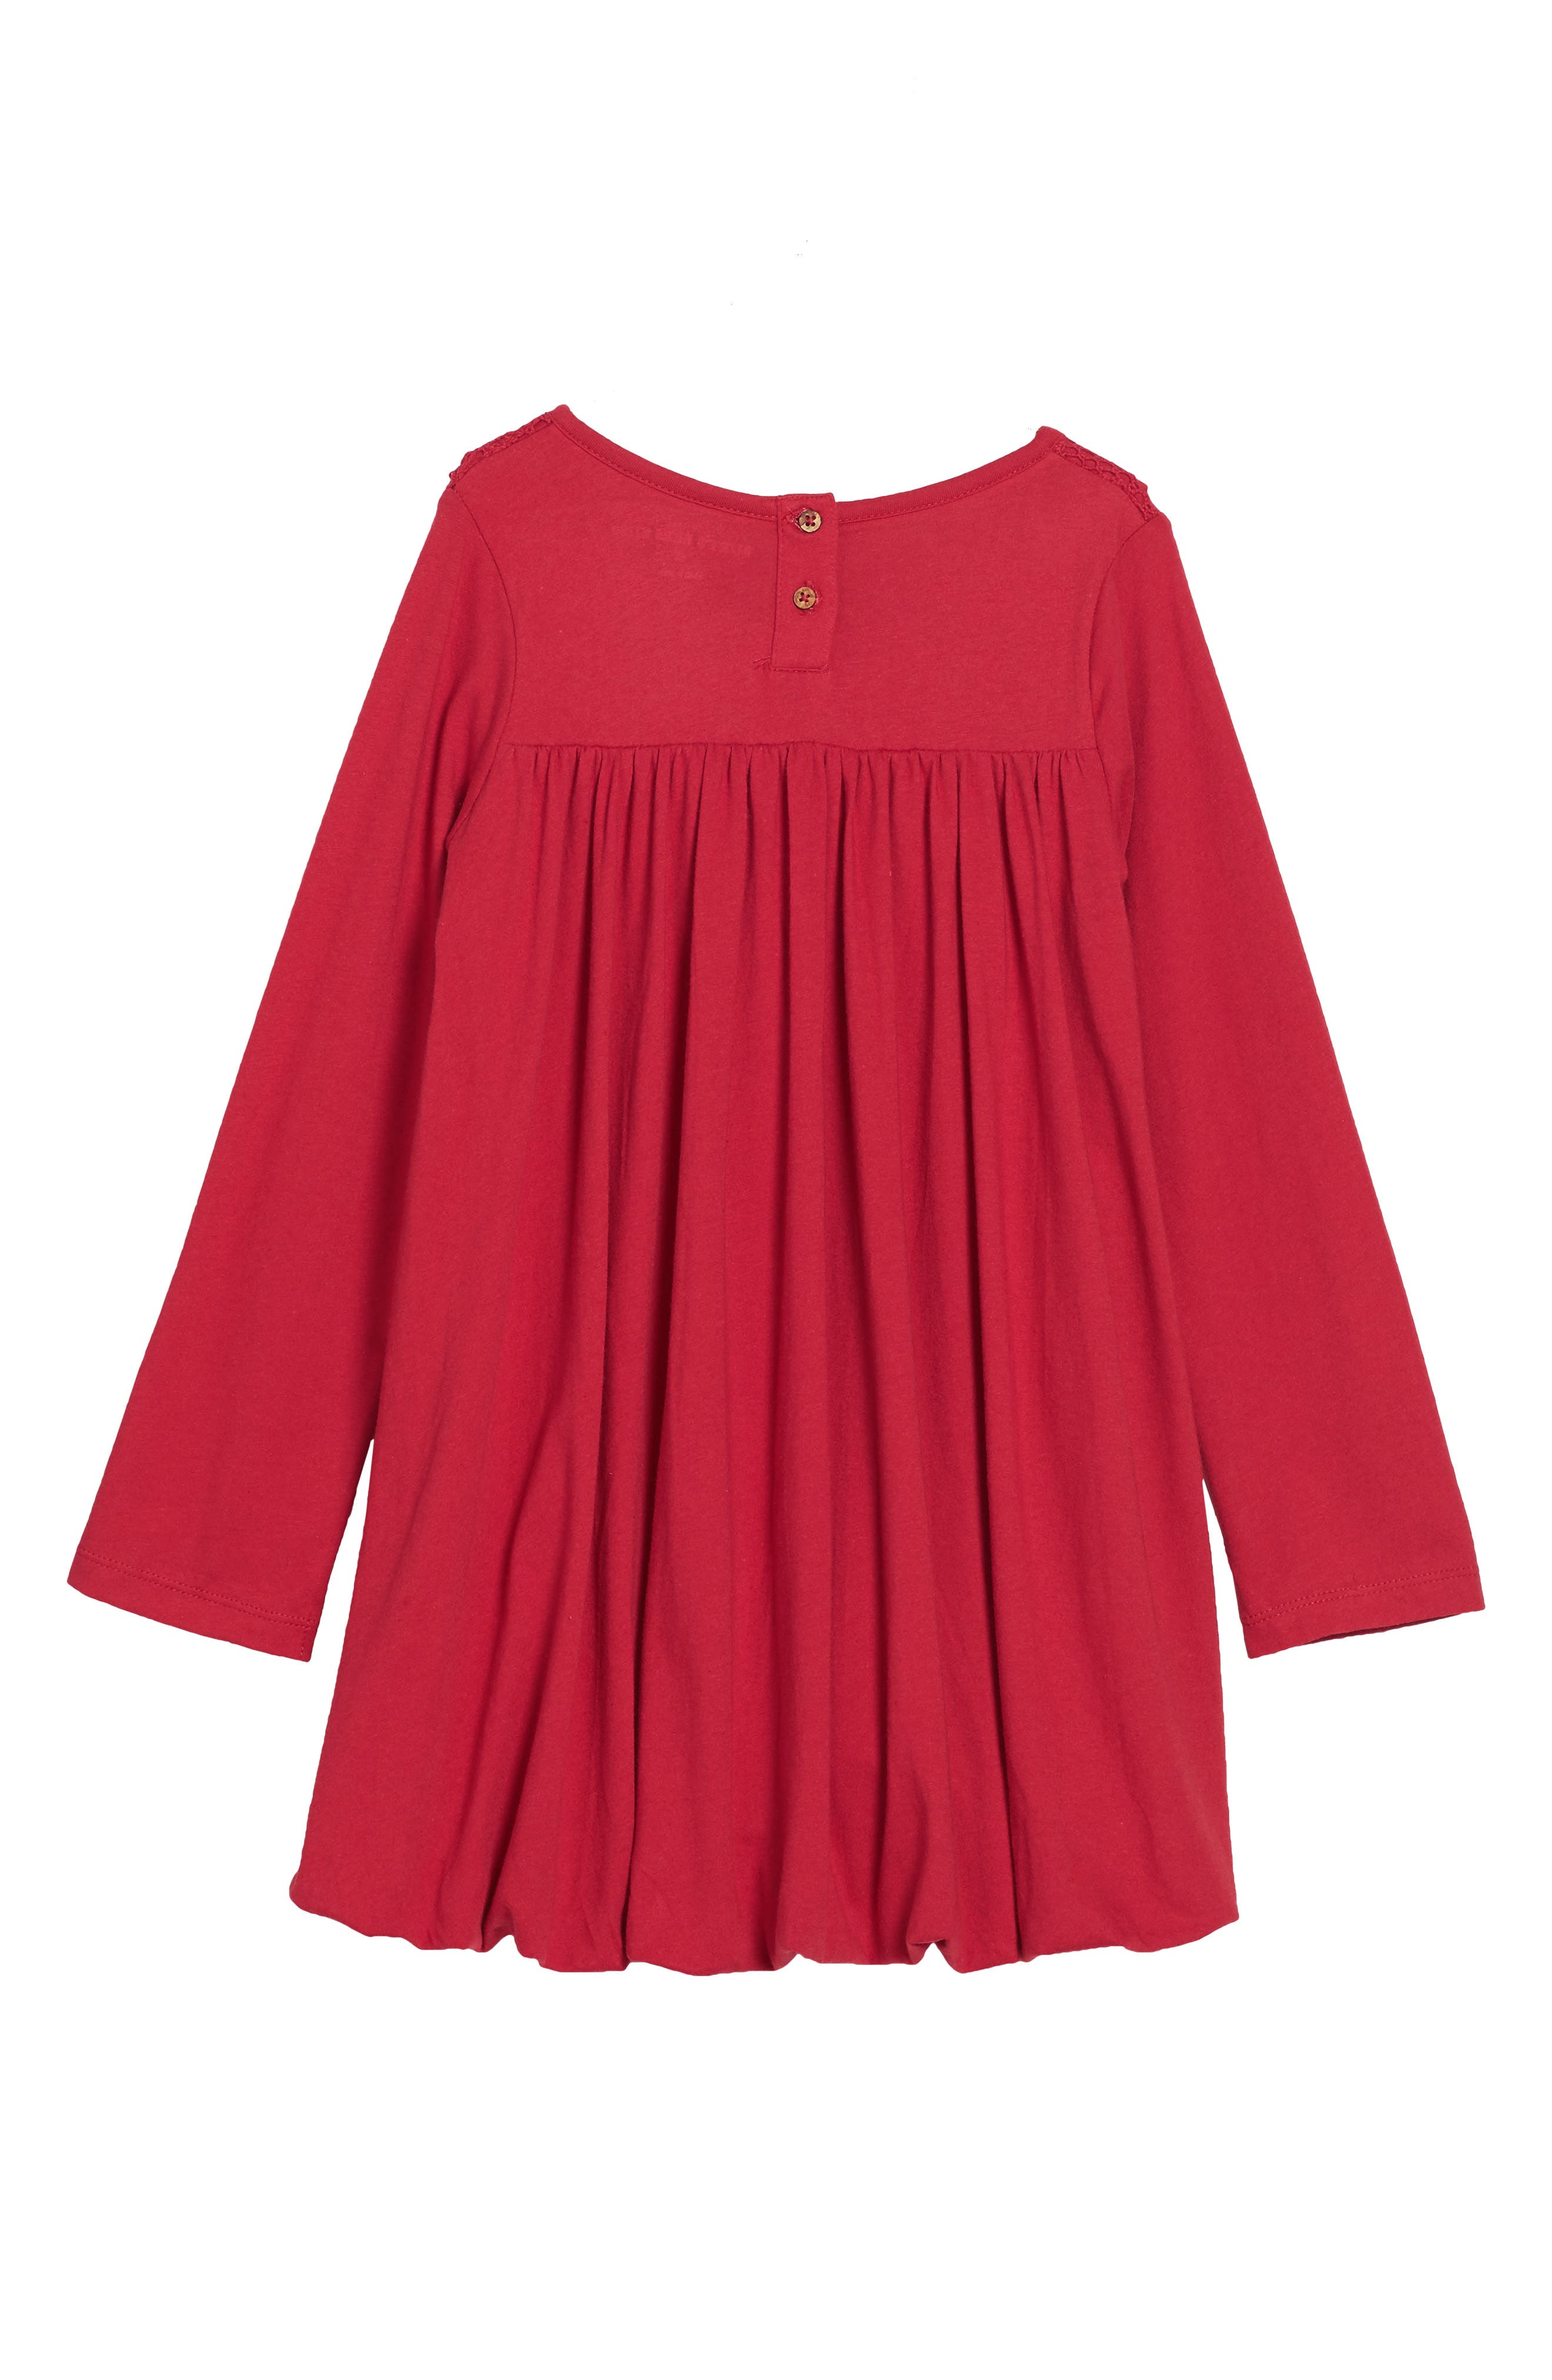 Alternate Image 2  - Burt's Bees Baby Organic Cotton Bubble Dress (Toddler Girls & Little Girls)